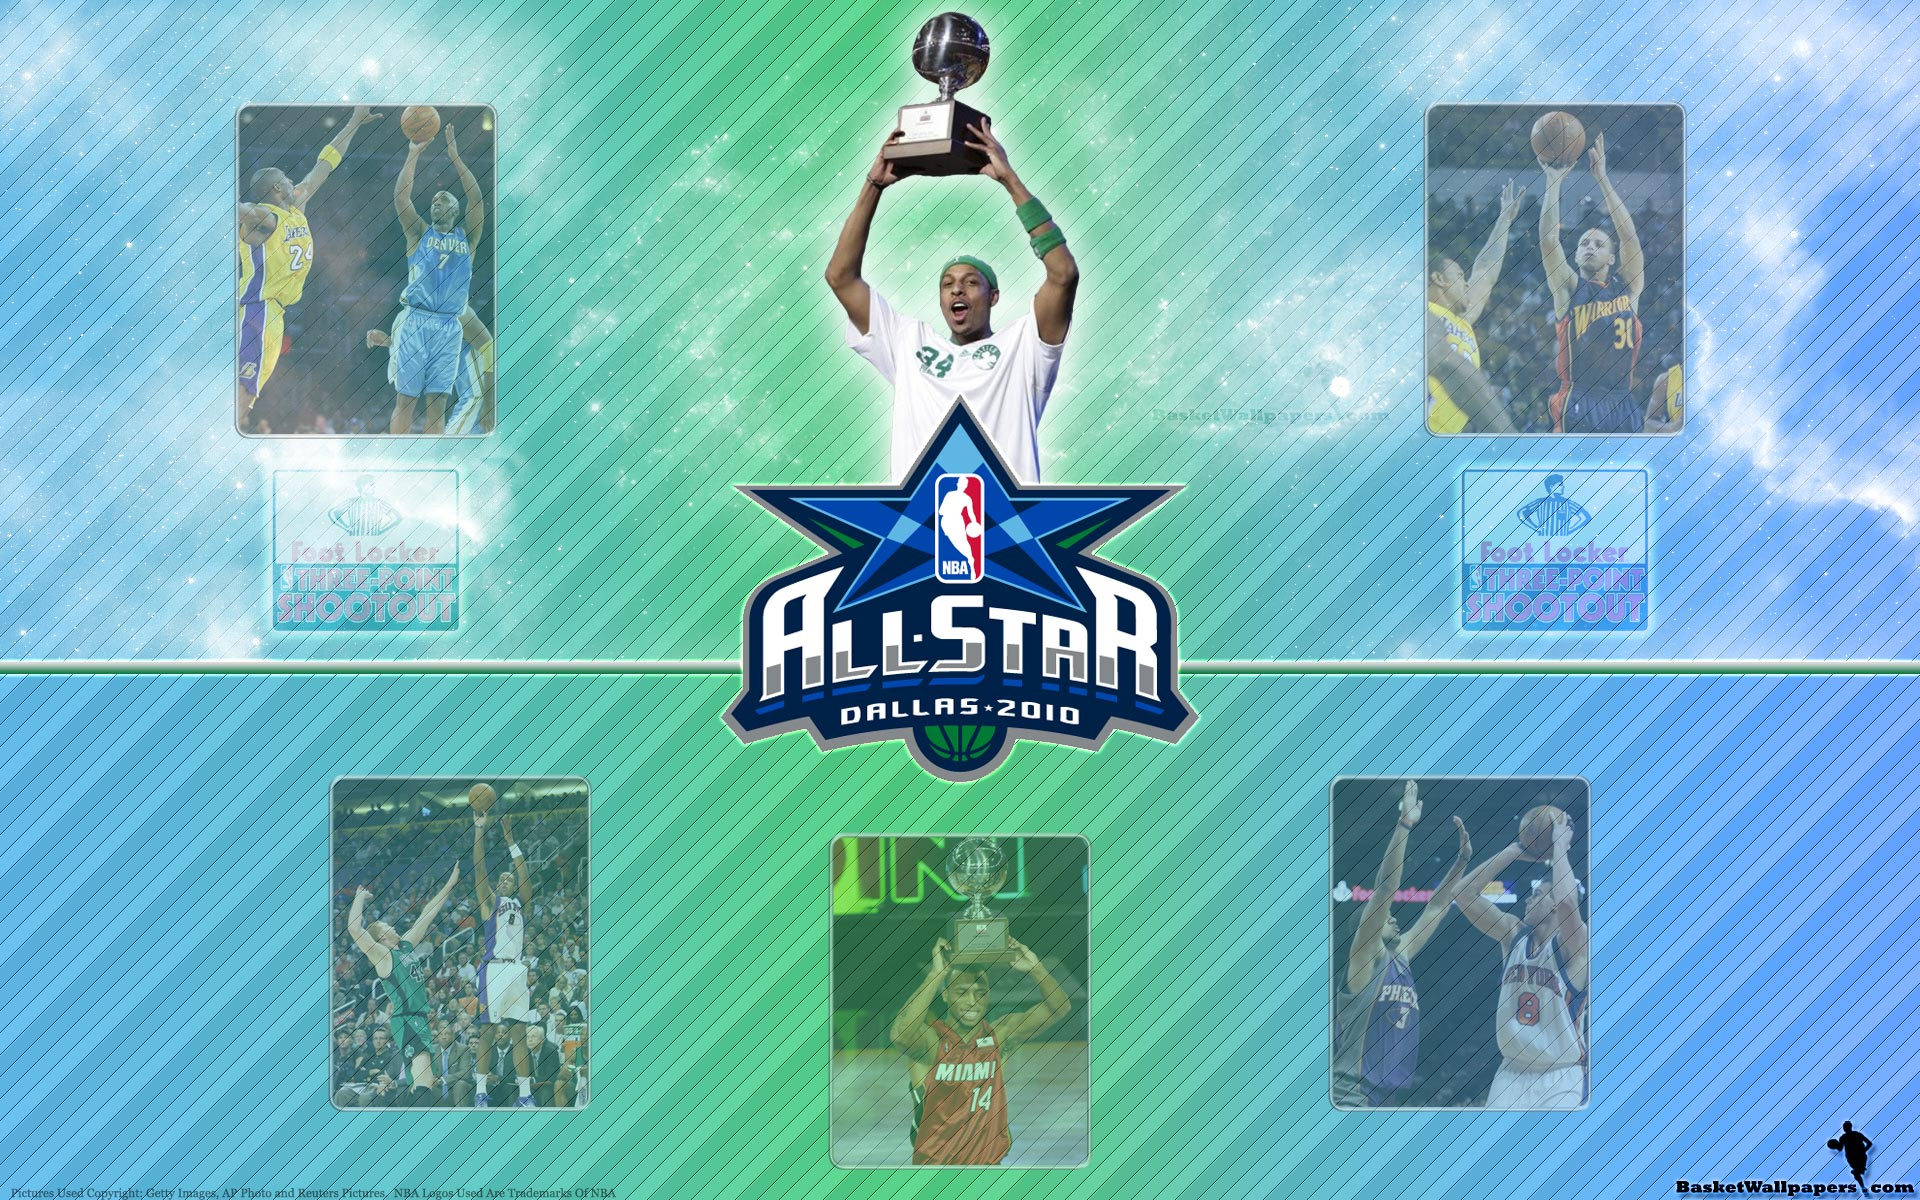 NBA All-Star 2010 3pt Shootout